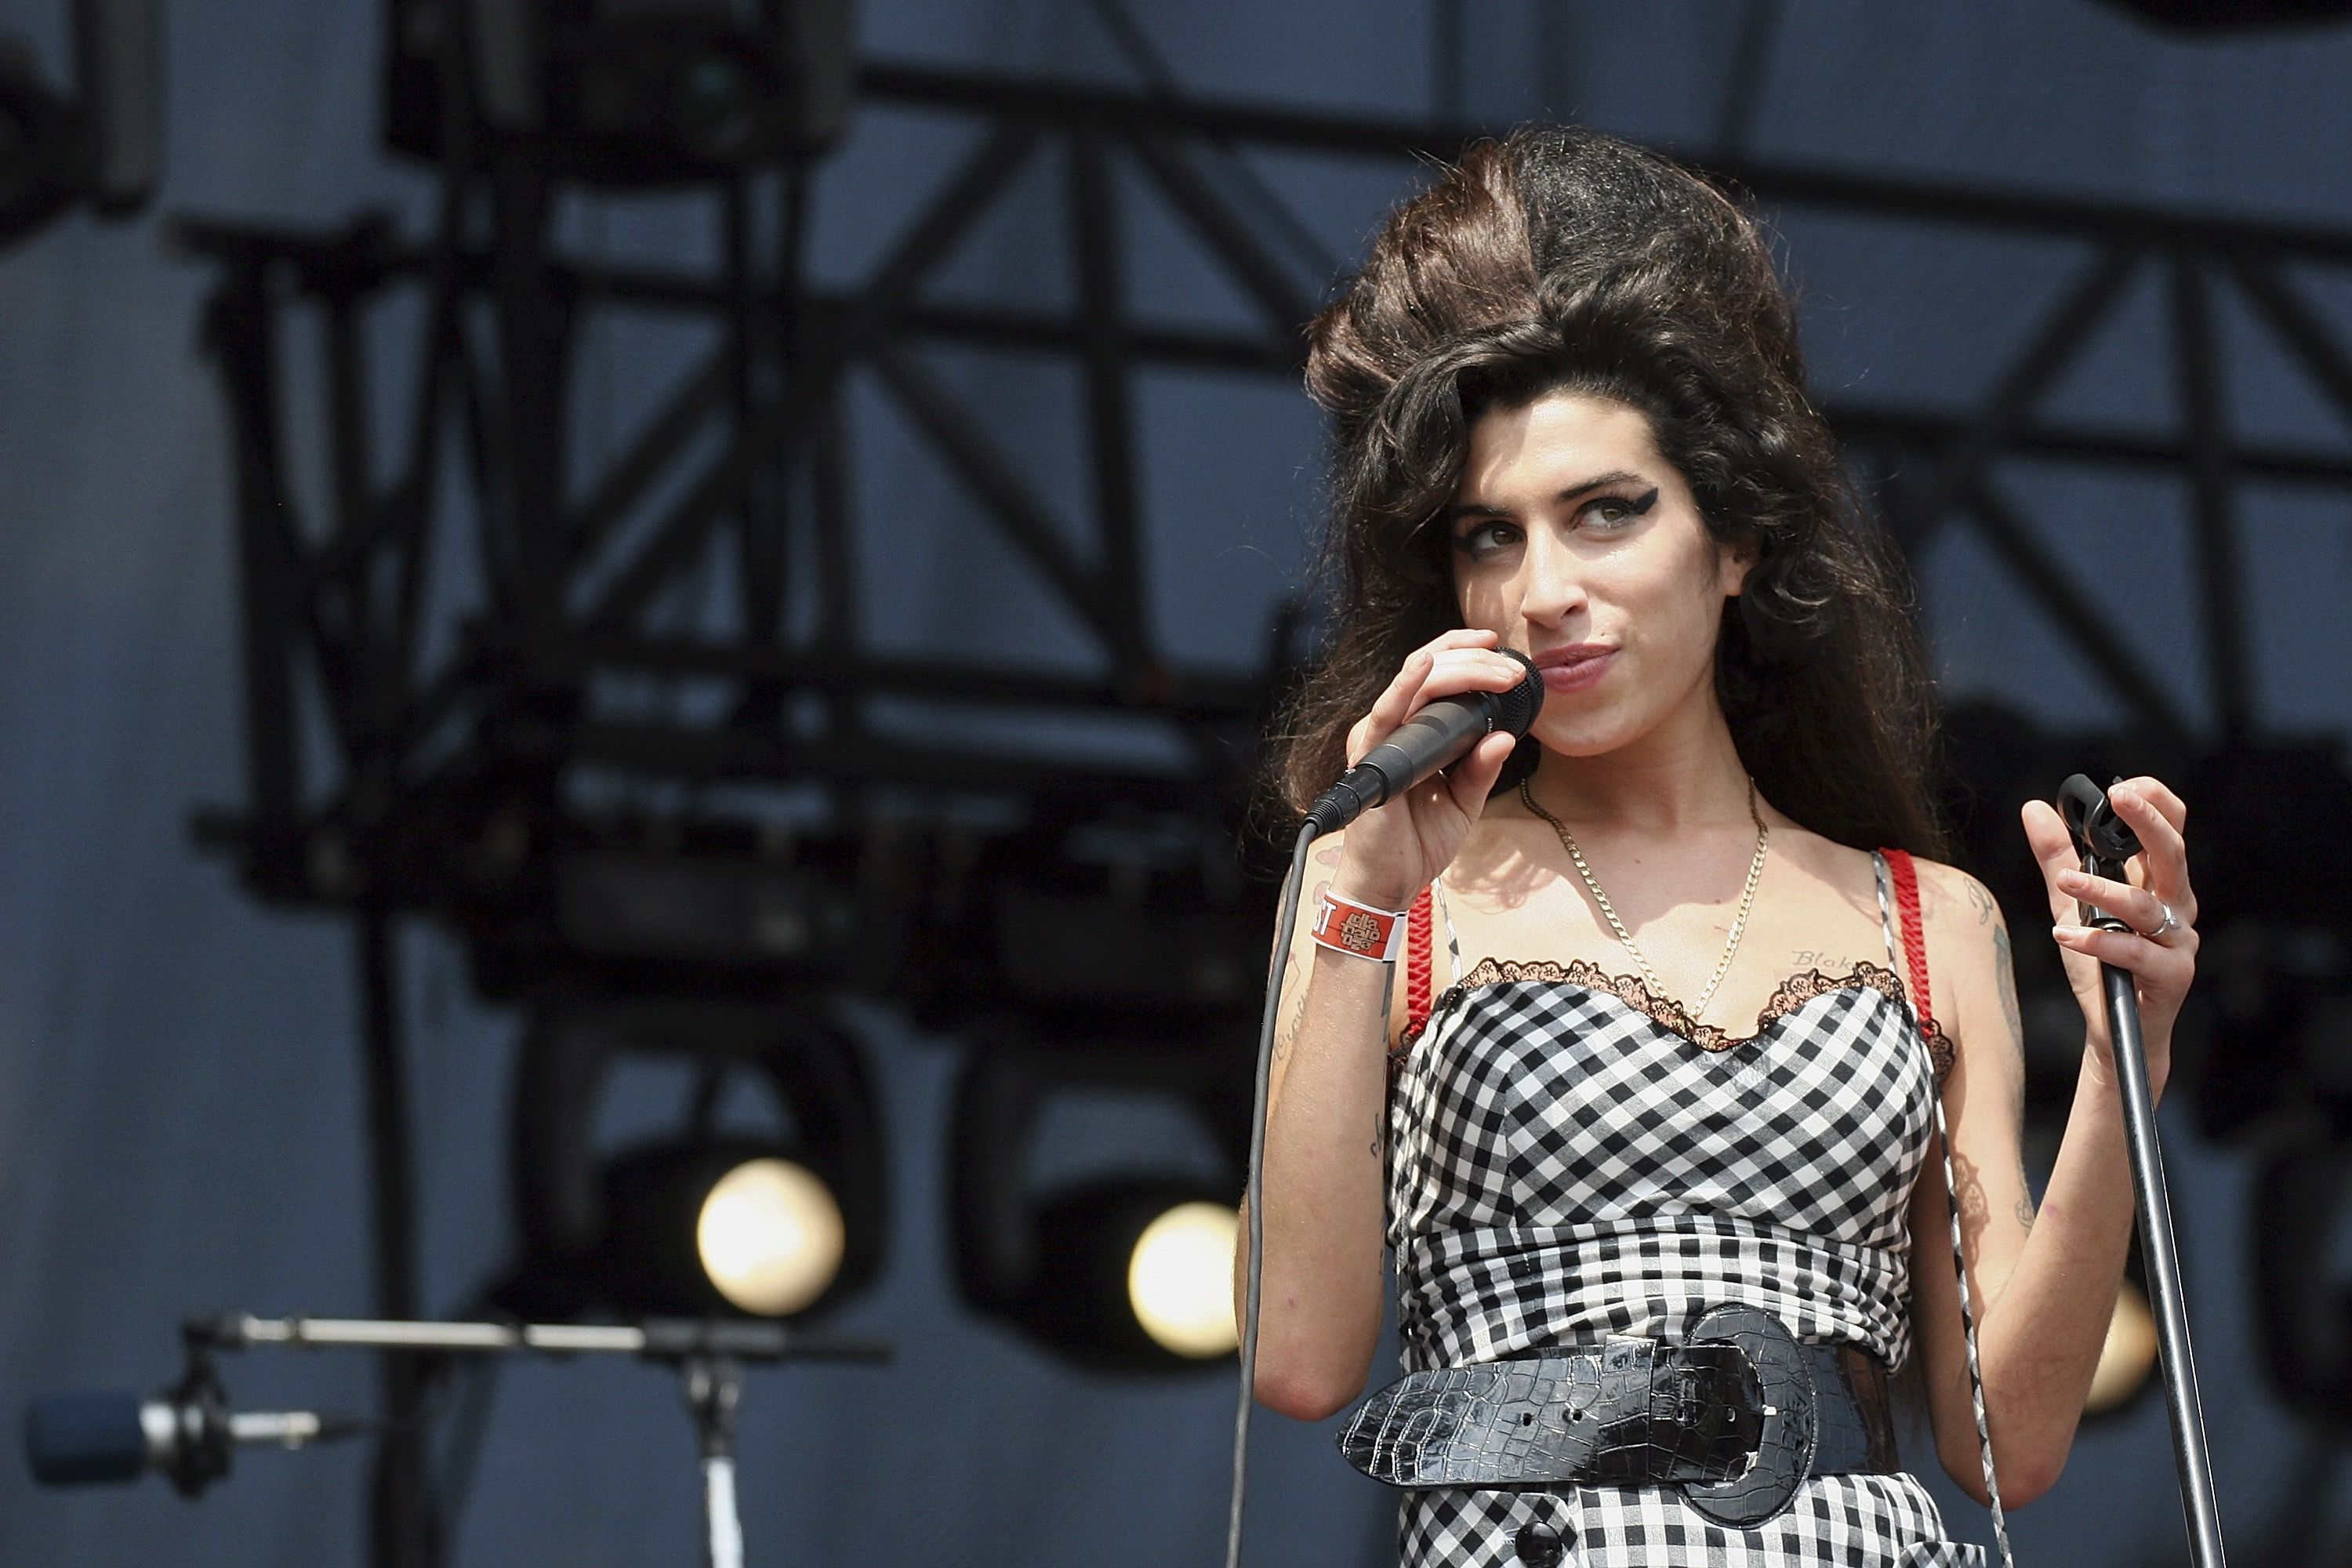 The late Amy Winehouse performs onstage at Lollapalooza in Grant Park on August 5, 2007 in Chicago, Illinois. | Photo: Getty Images